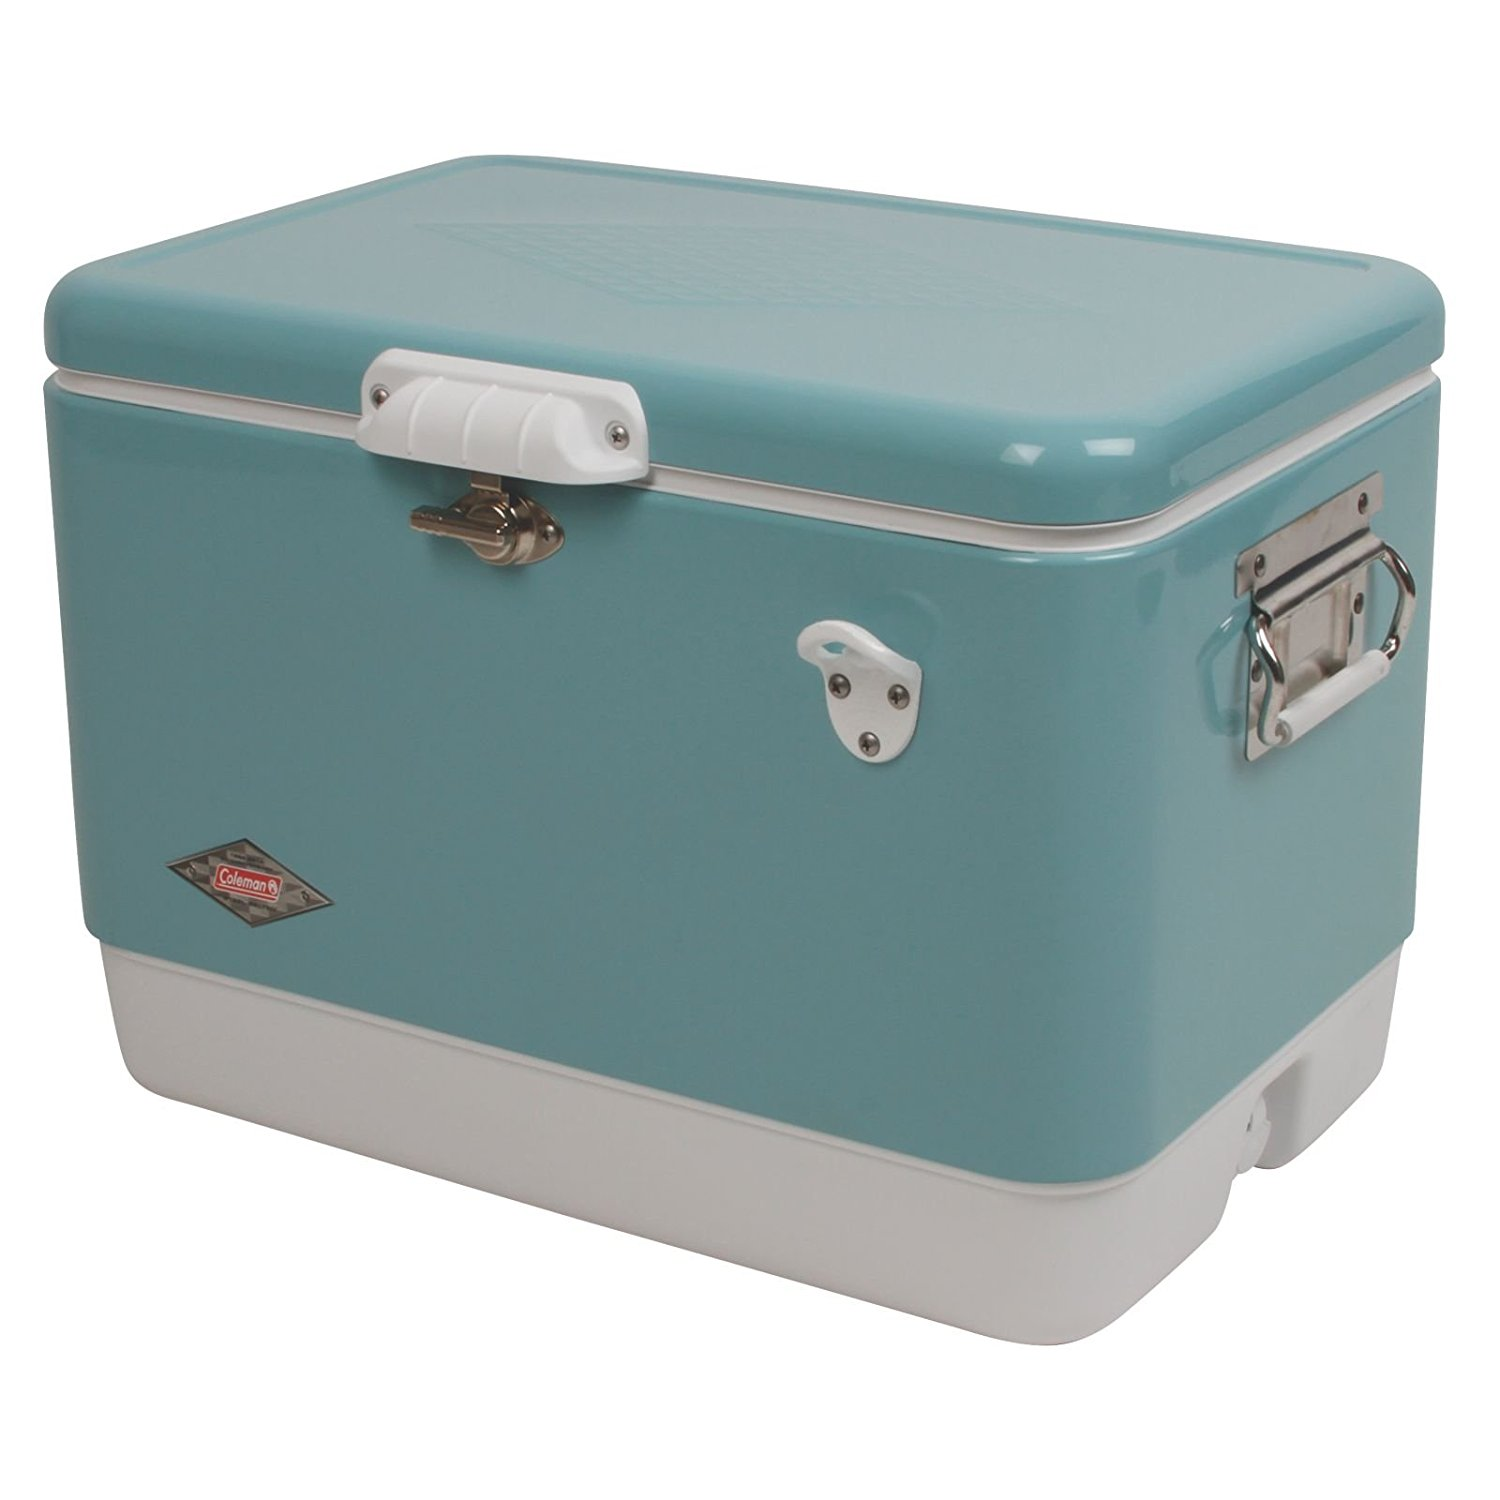 Coleman 54-Quart Steel-Belted Cooler - My Best Product Reviews